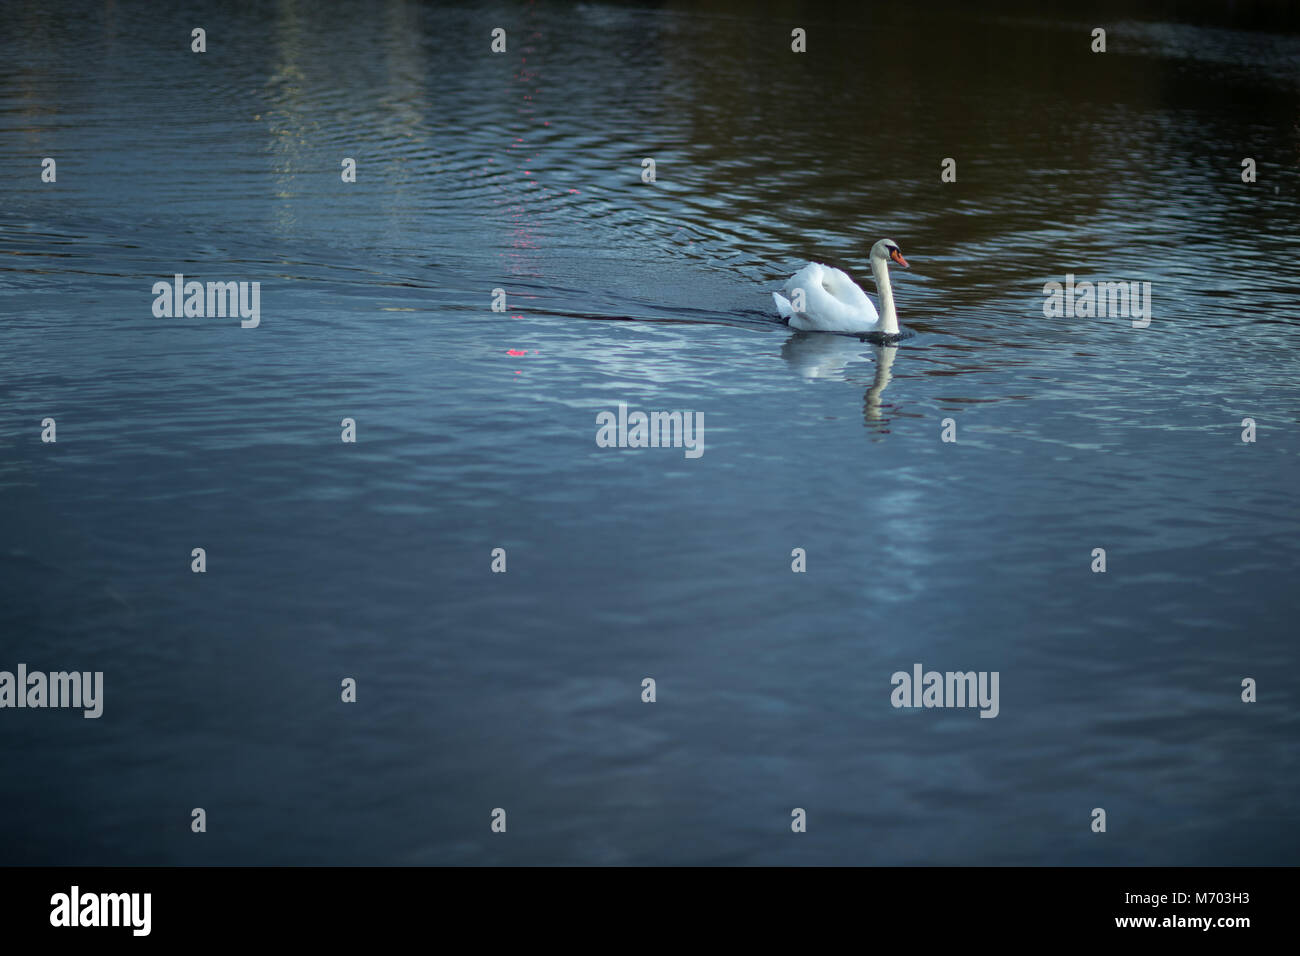 A swan on the Round Pound in Hyde Park at dusk, London, England, UK - Stock Image